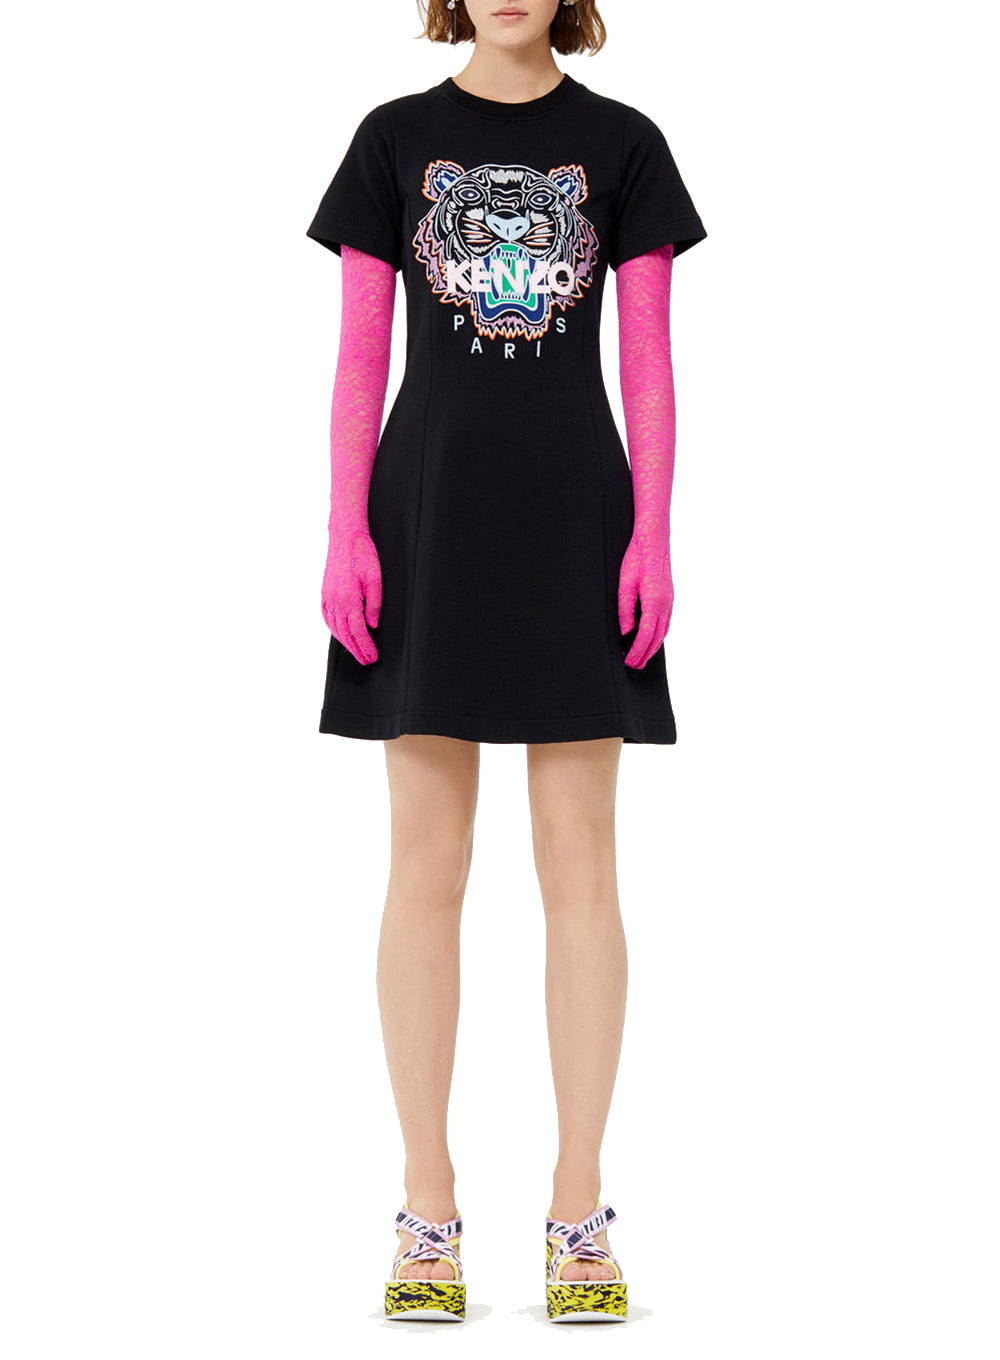 KENZO | Tiger Classic Short Sleeve T-Shirt Dress